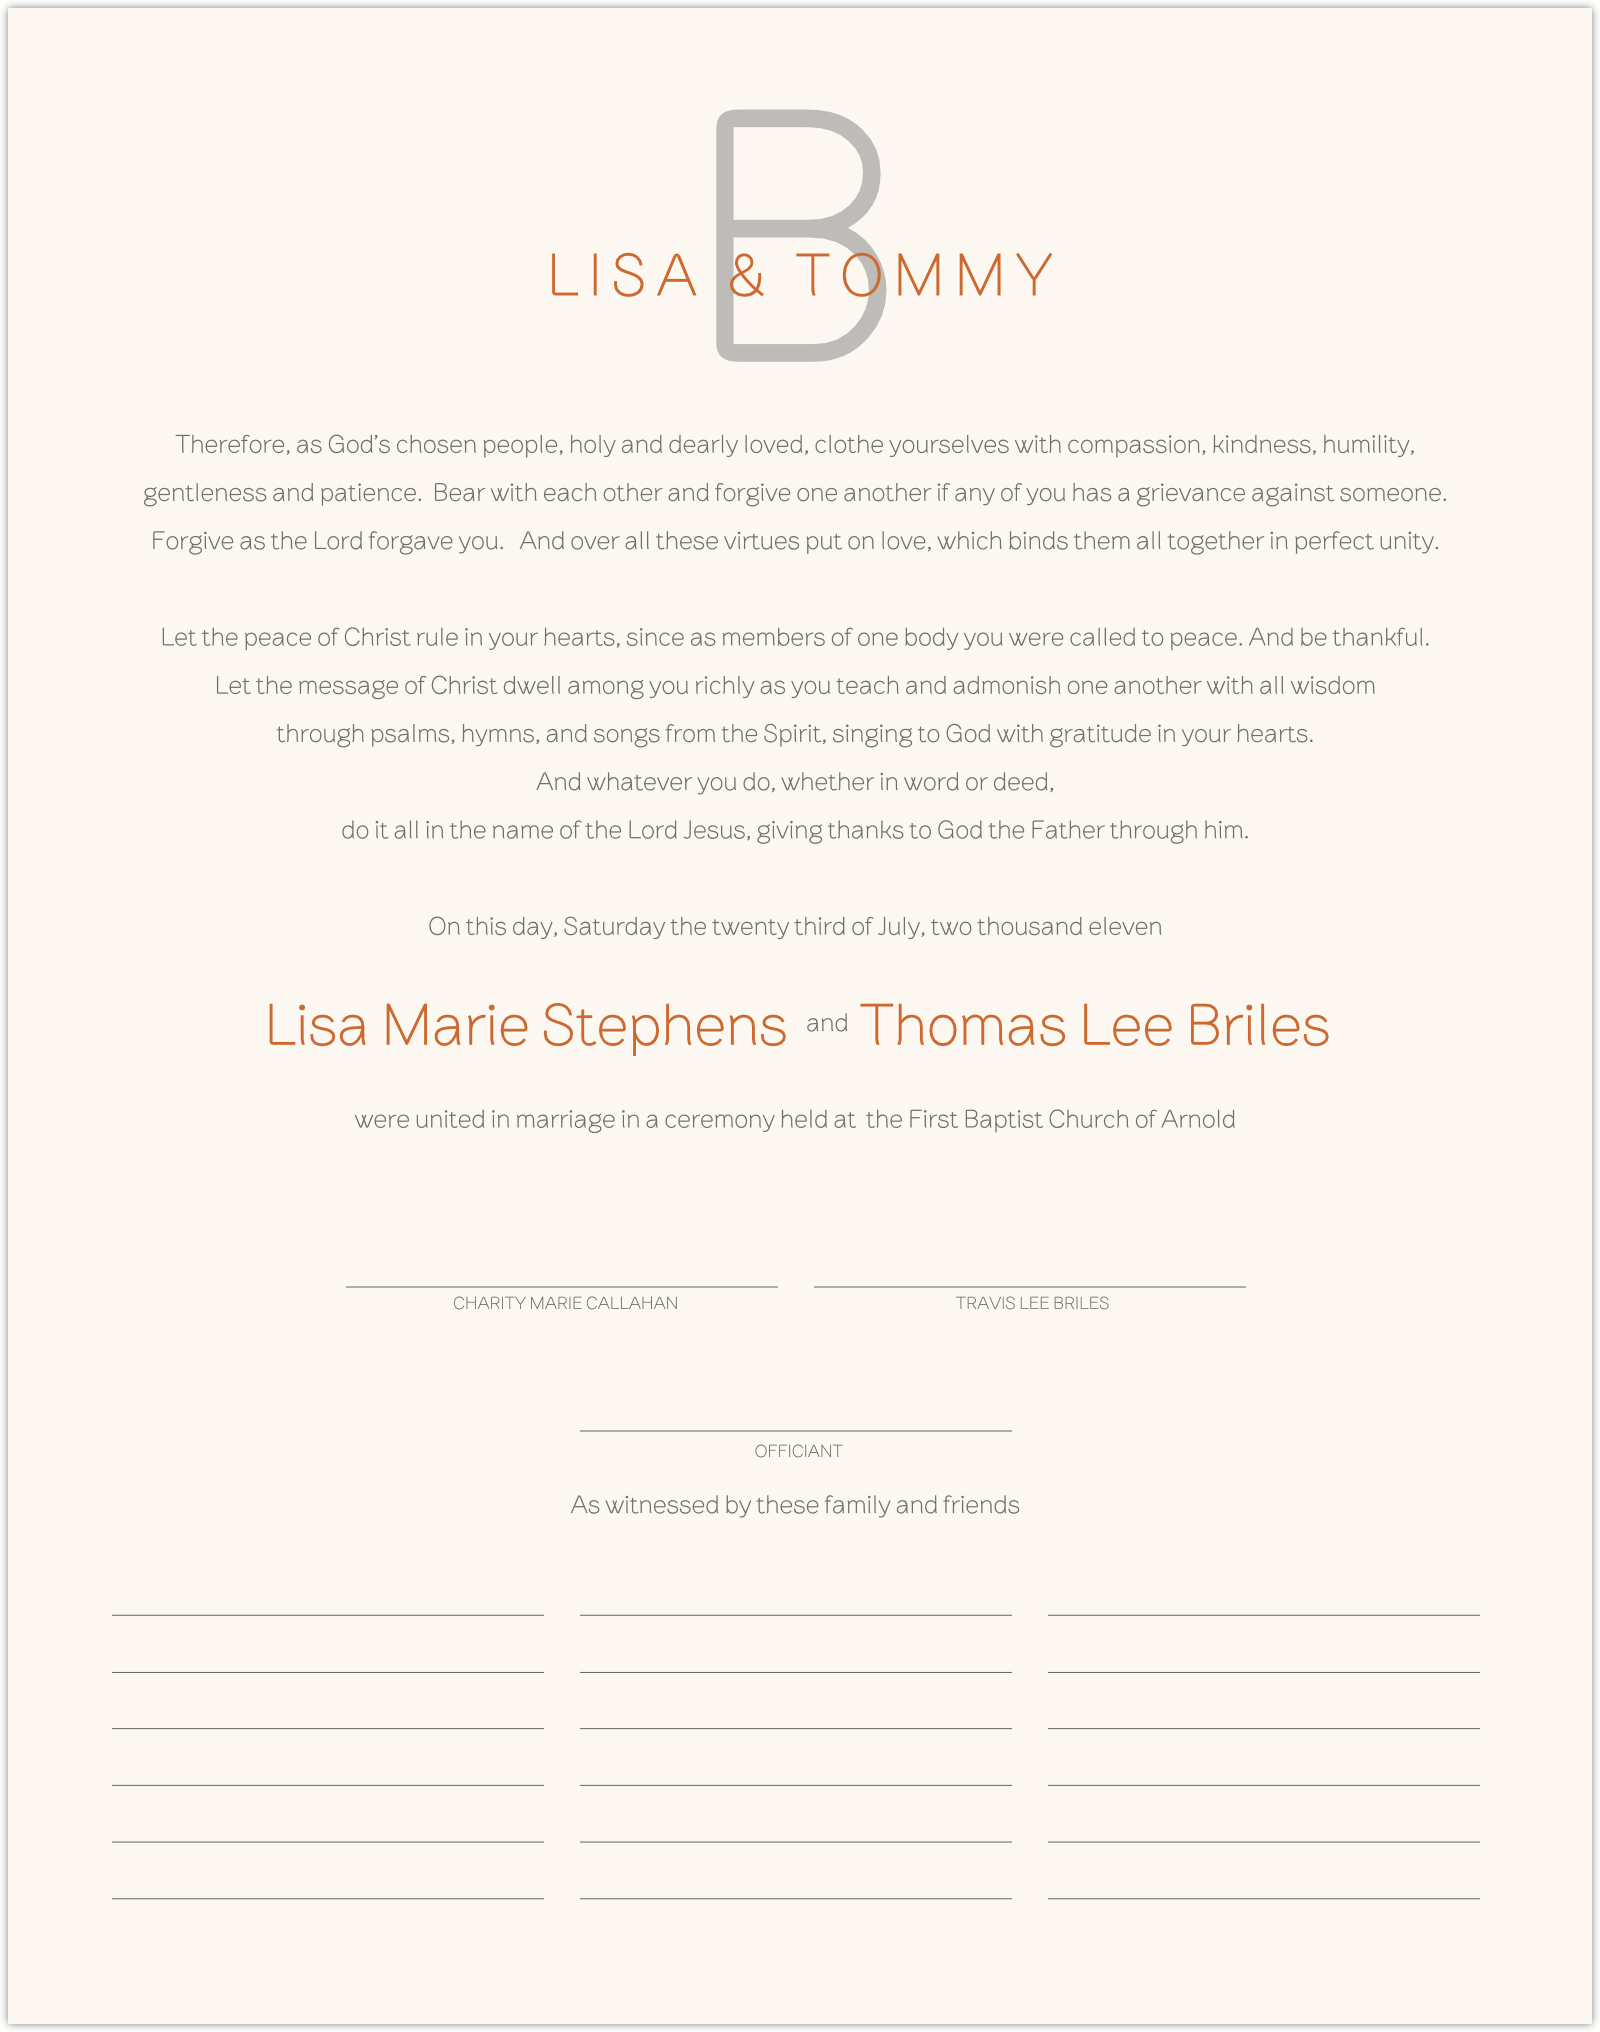 Brownstone Monogram 15 Wedding Certificates